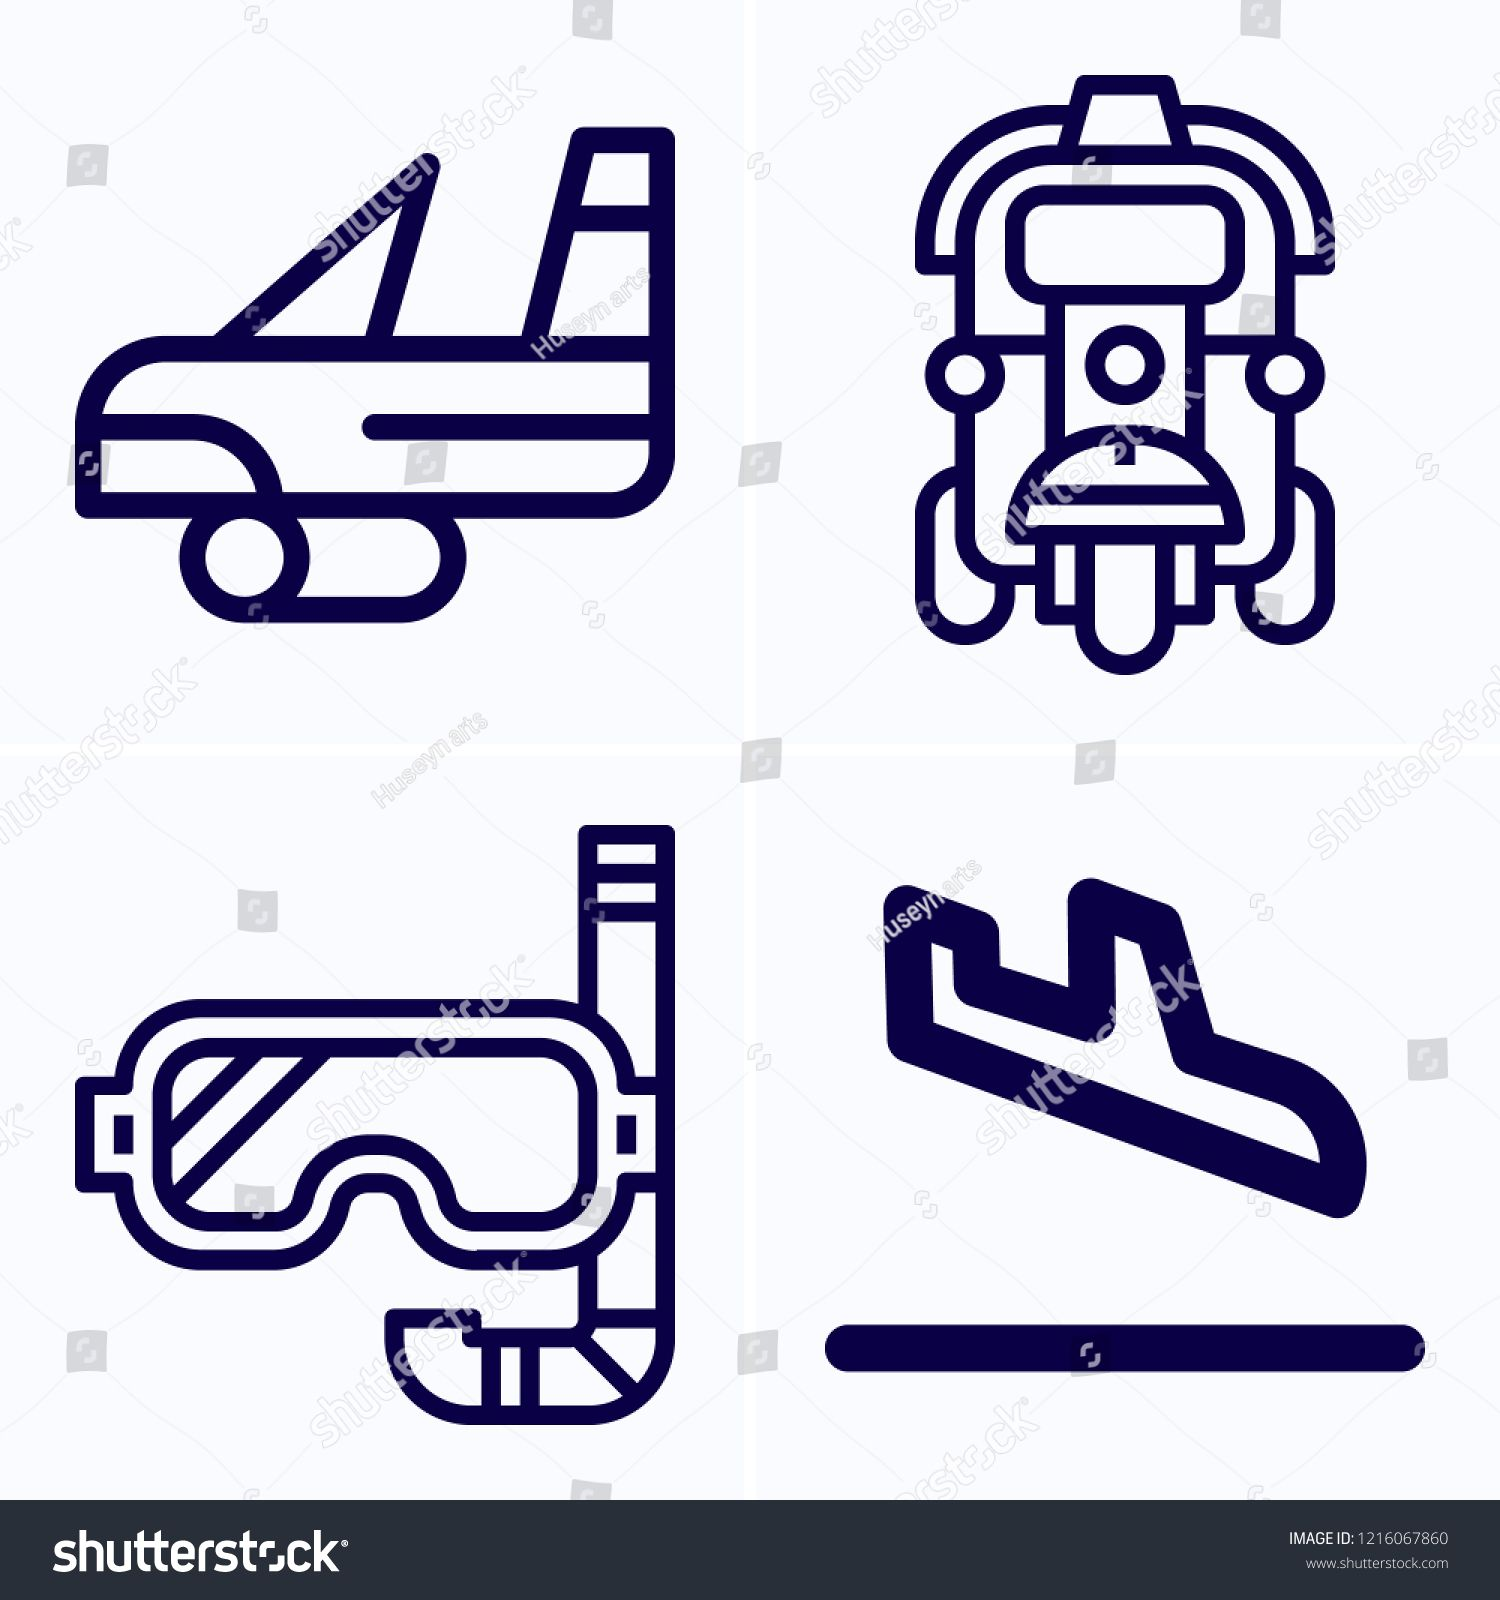 Simple set of 4 icons related to travel outline such as